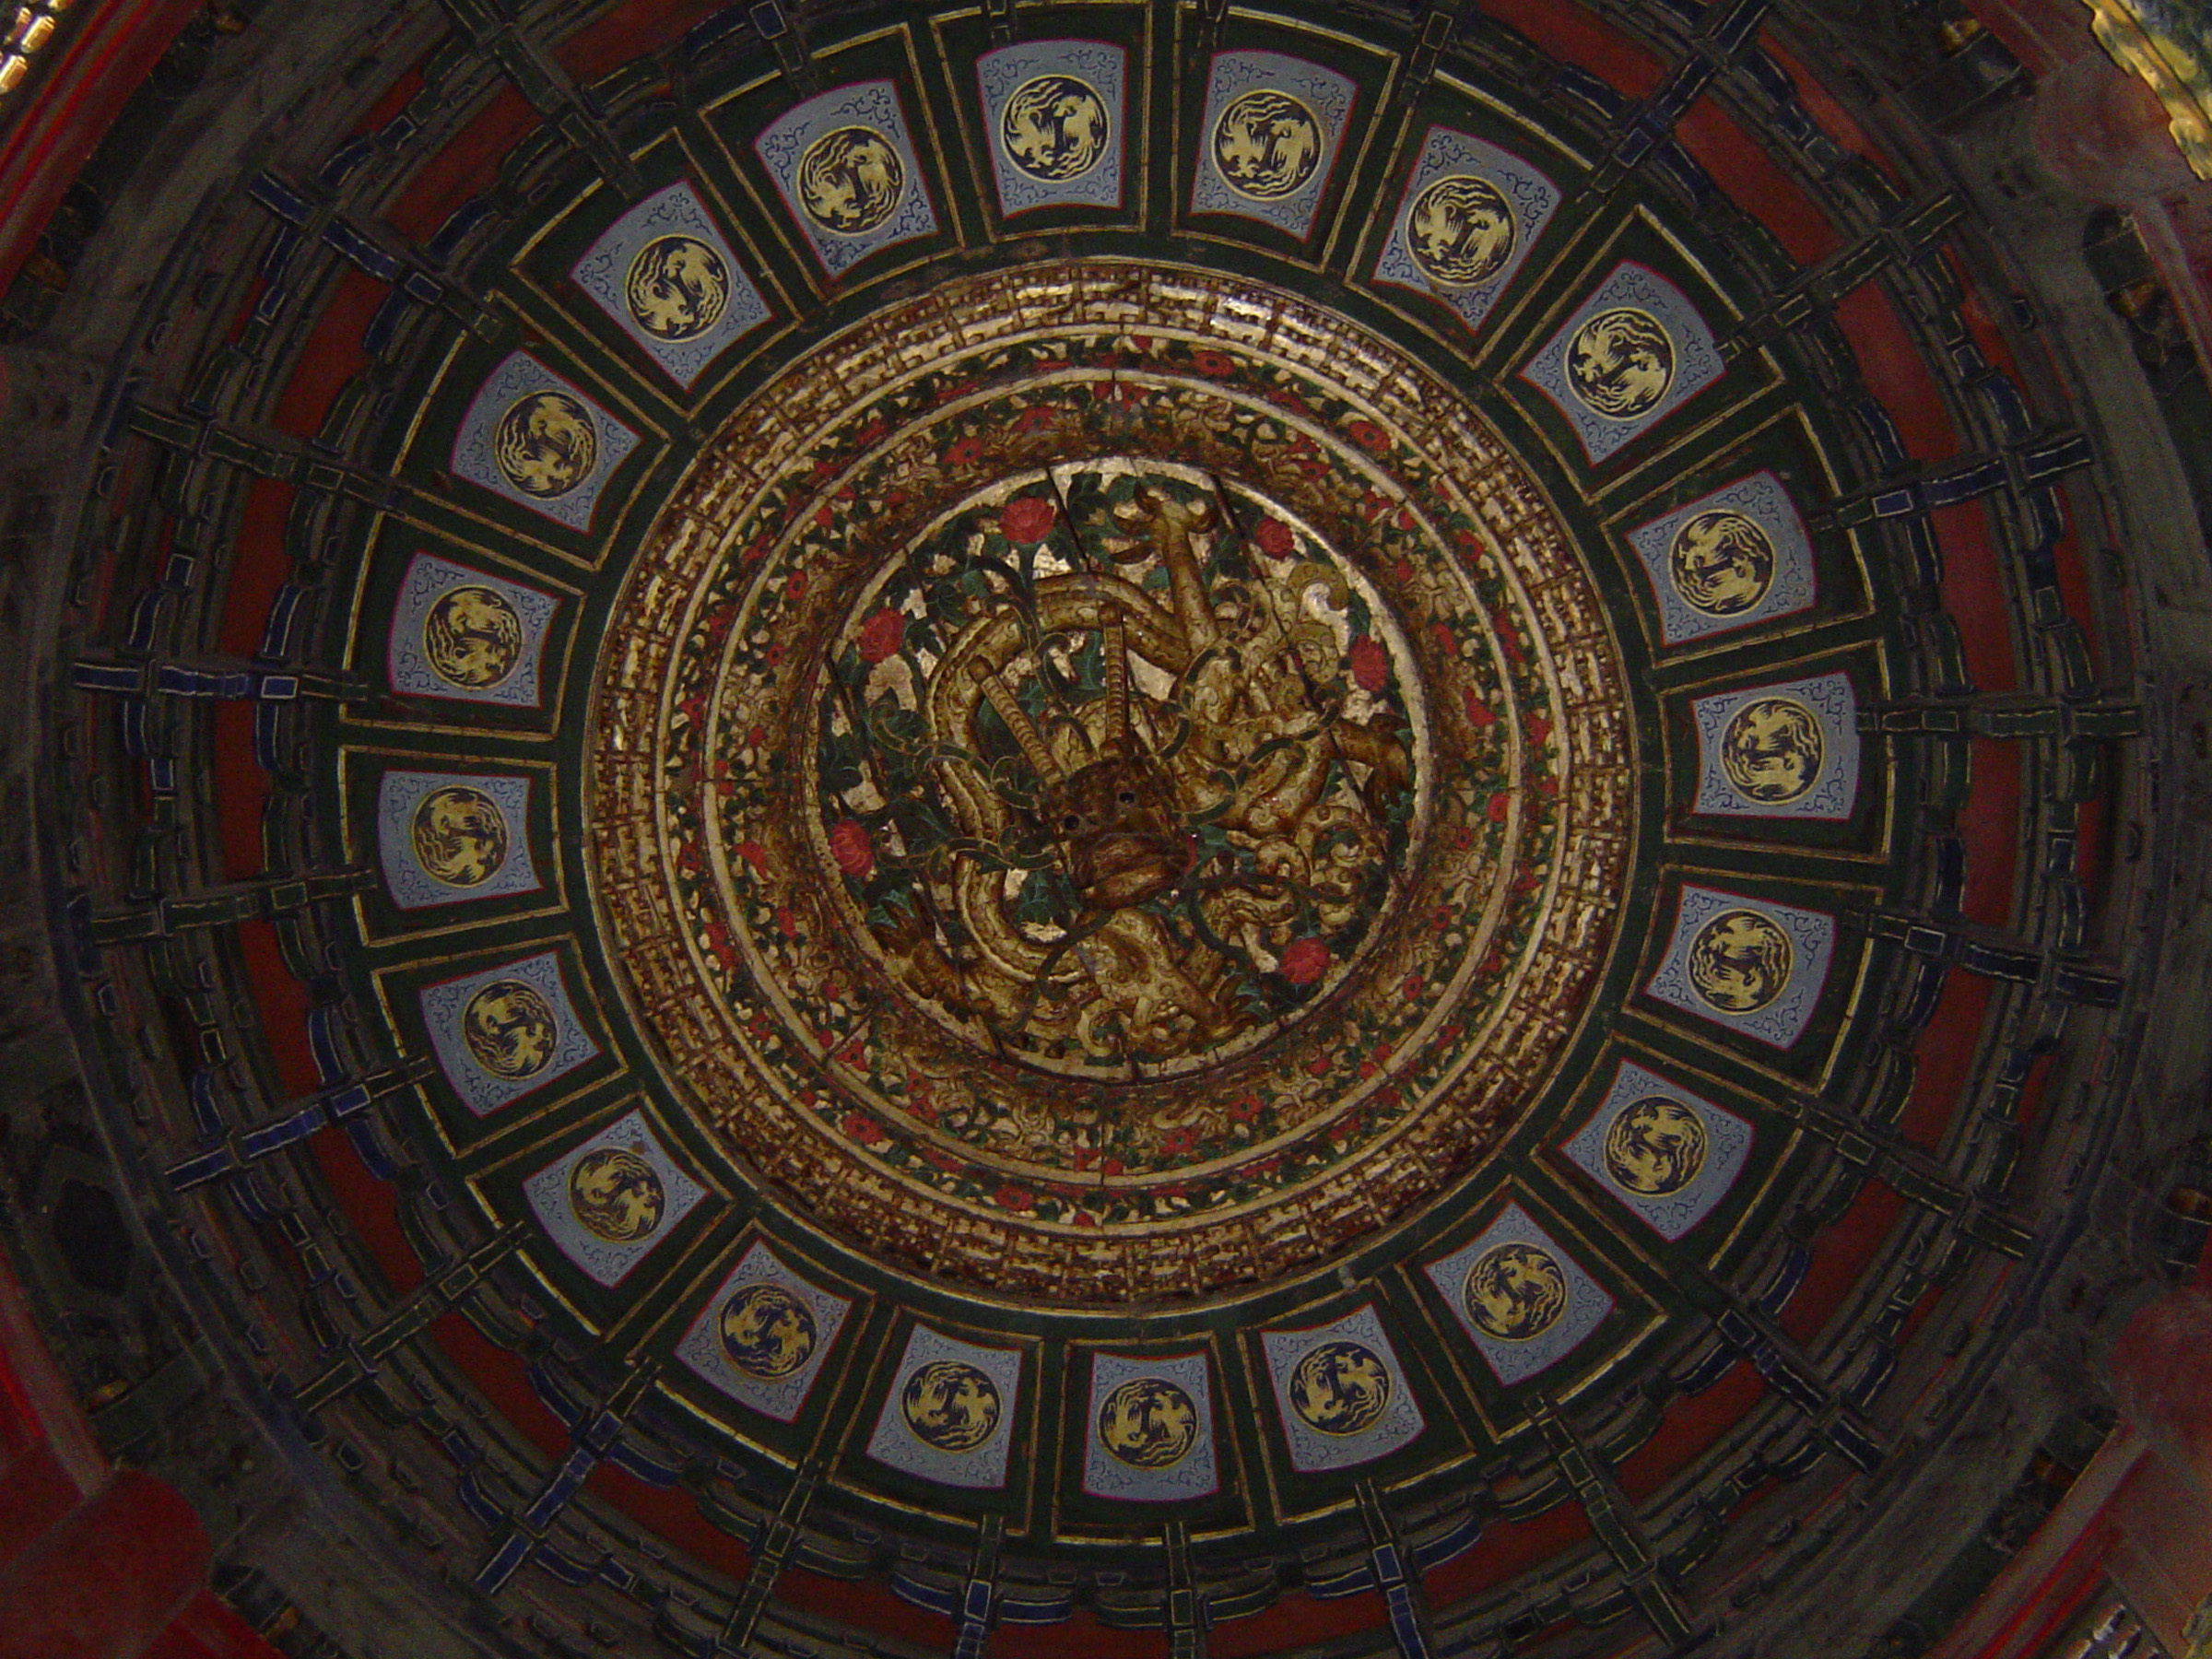 Ceiling Design Online Free Stock Photo Of Circular Ceiling Design Of Chinese Temple